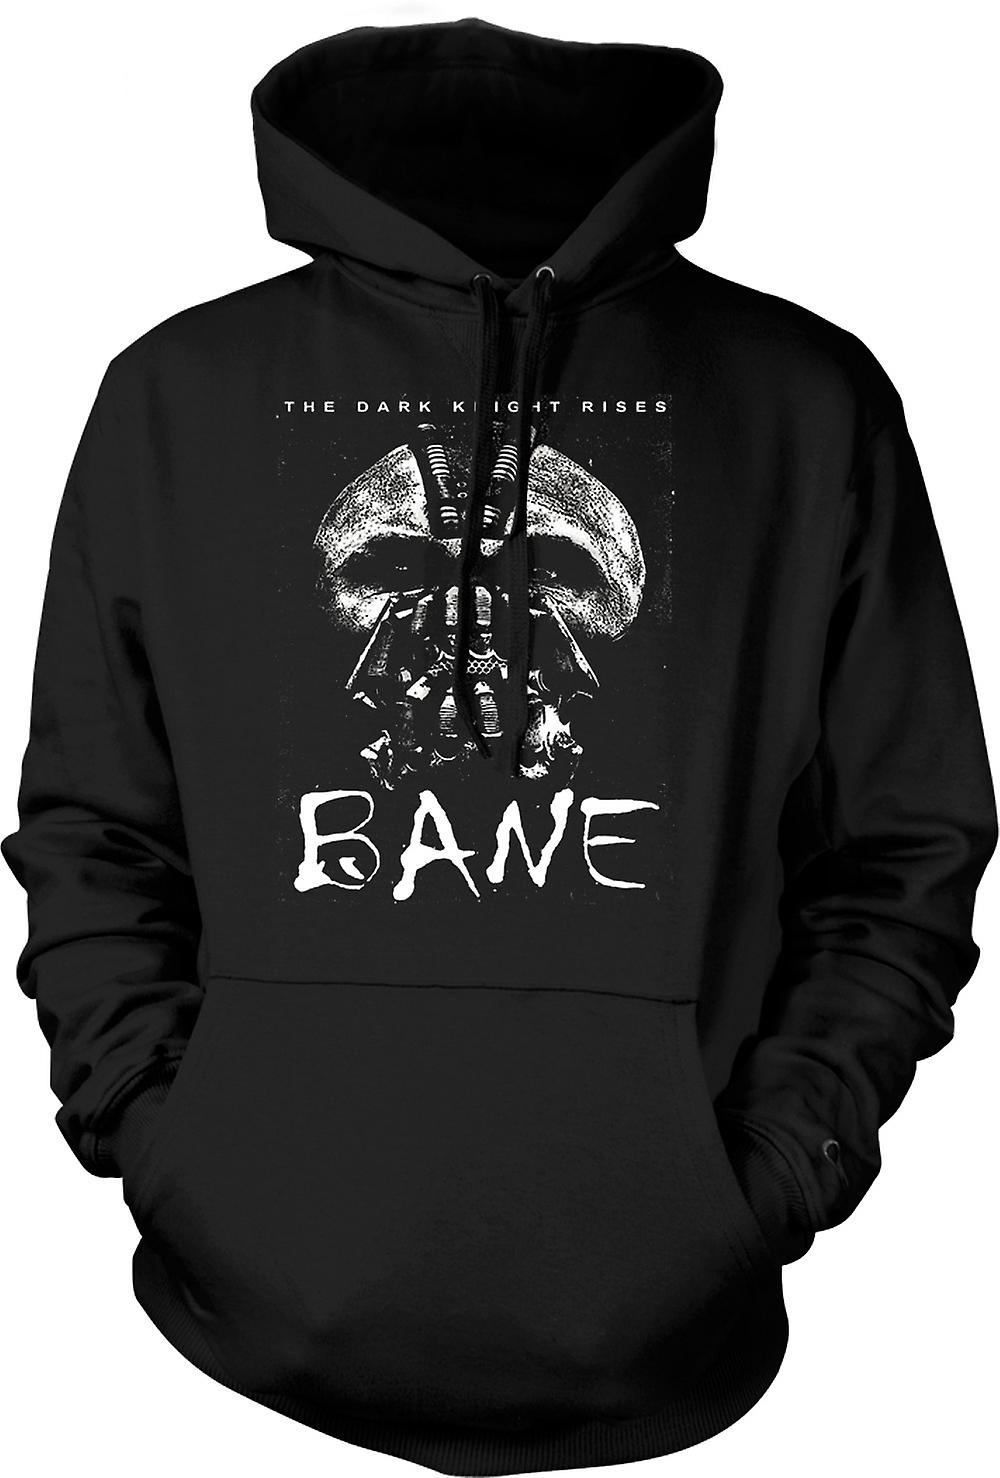 Mens Hoodie - Batman The Dark Knight - Bane